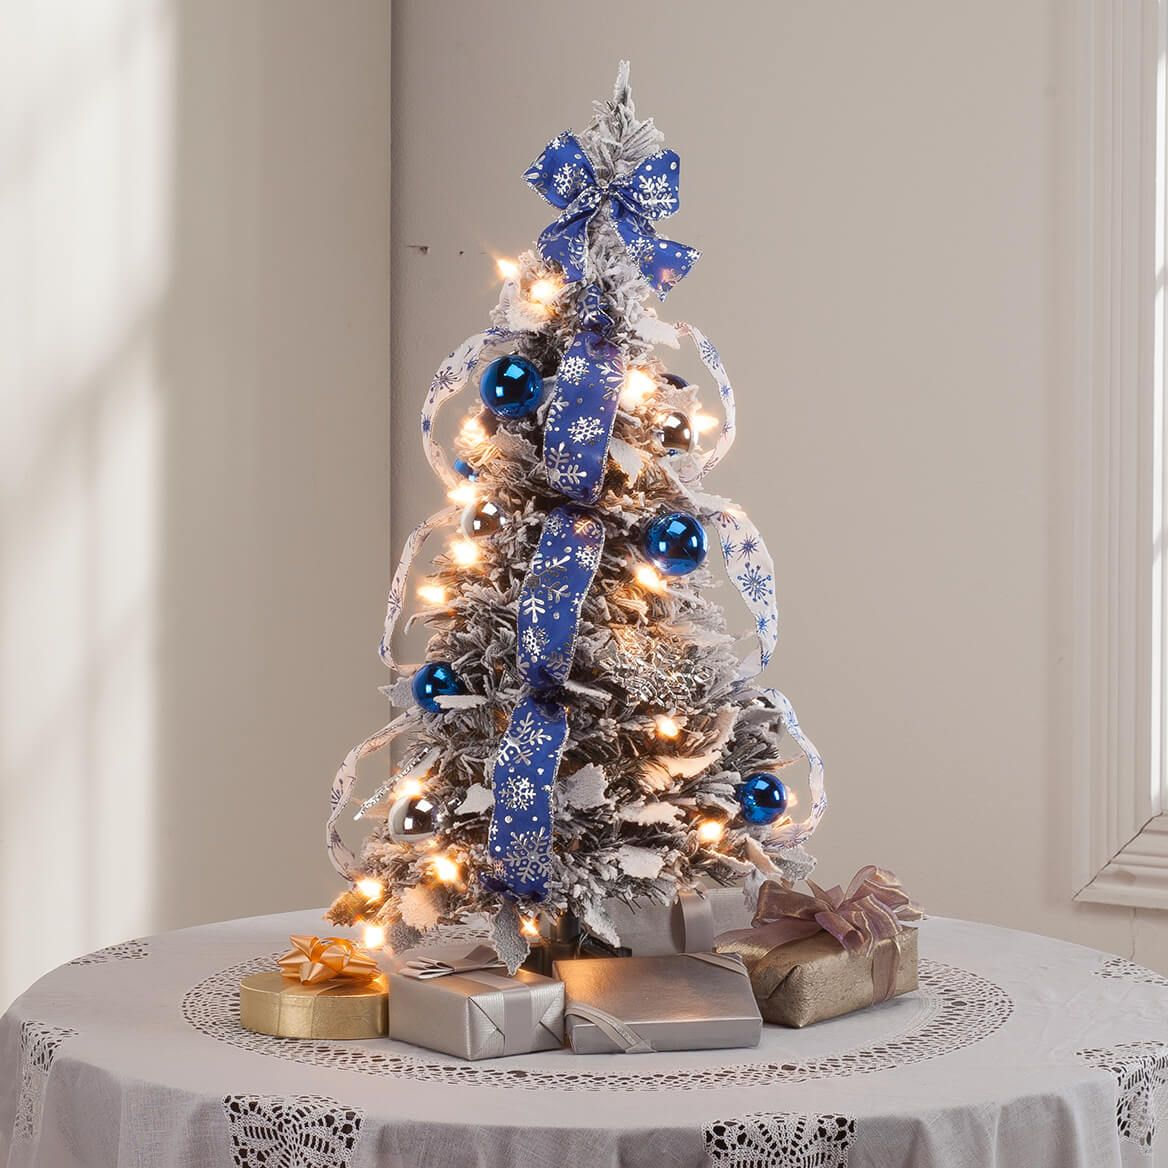 This 2 Ft Frosted Winter Style Pull Up Tree By Northwoods Arrives Pre Lit Fully Decorated And Beautifully Flocked Simply Pull It Up Holiday Frost Tree